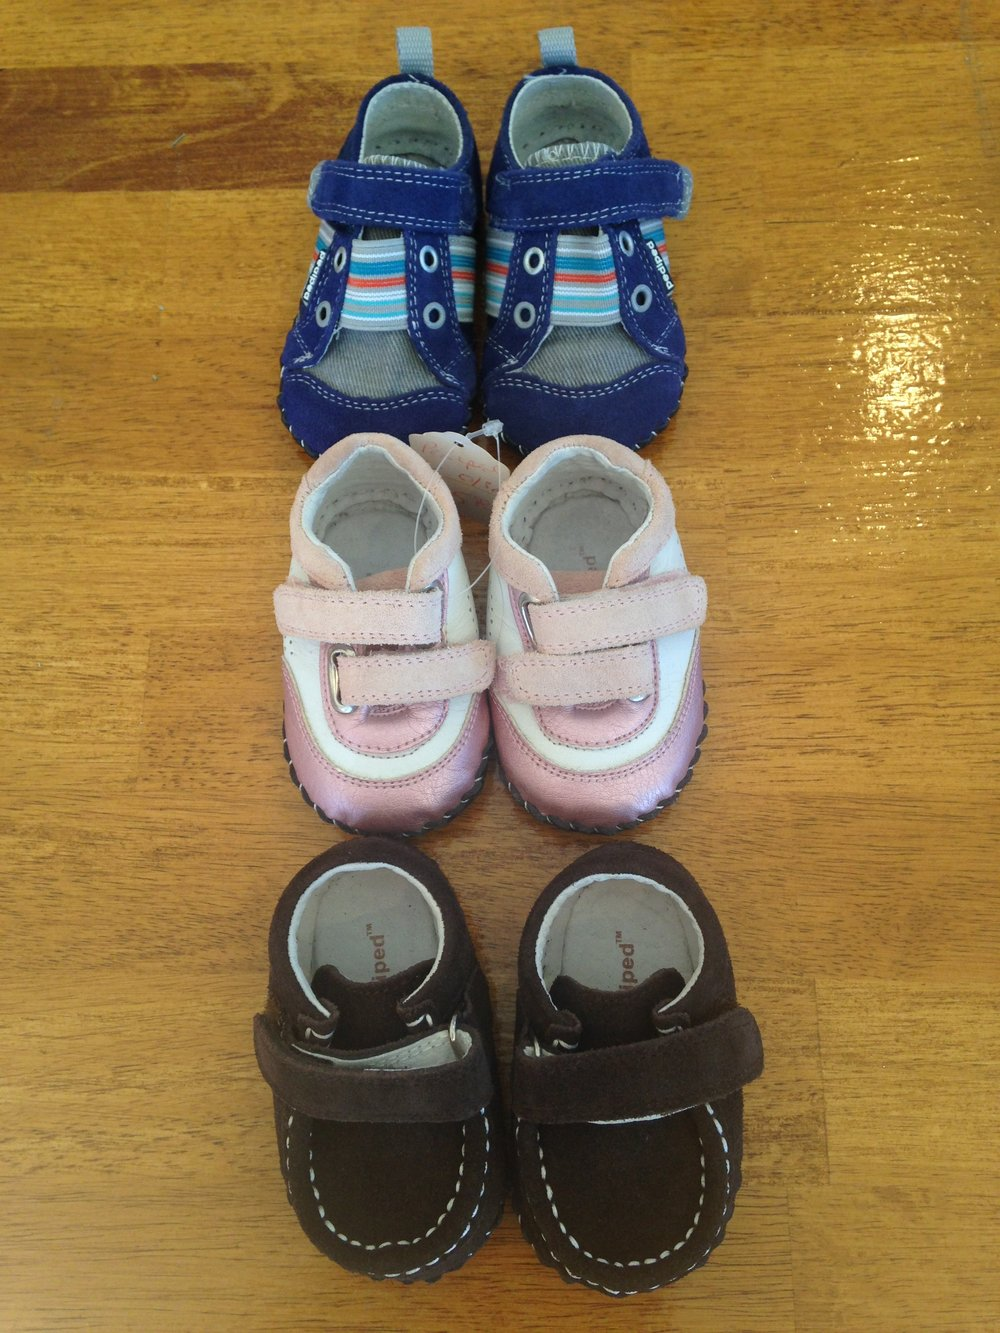 Tiny pediped shoes currently at junebug.